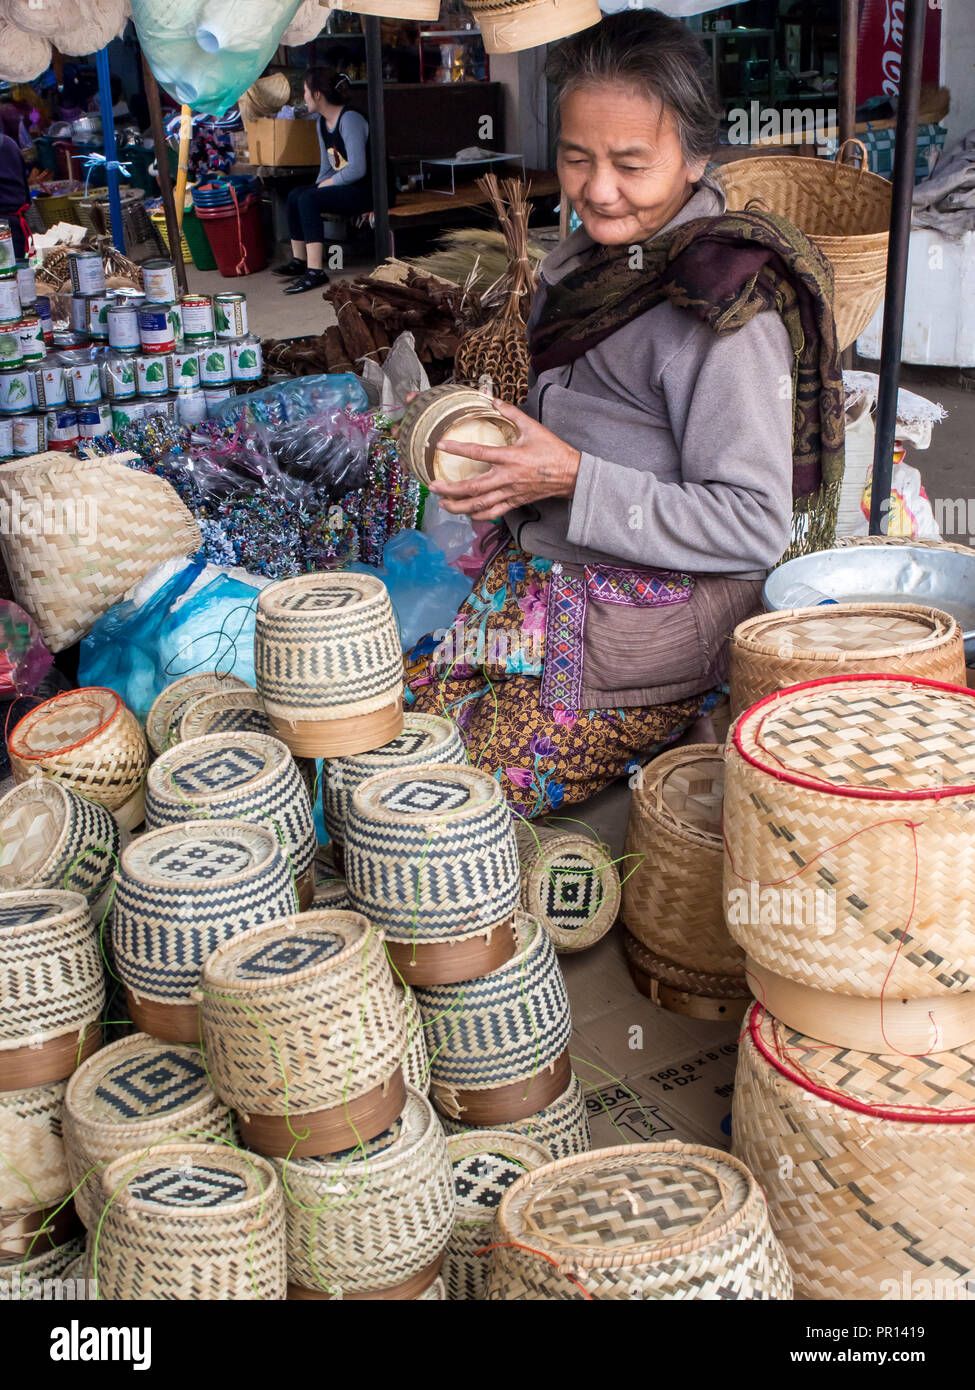 Woman selling baskets for sticky rice in central outdoor market, Luang Prabang, Laos, Indochina, Southeast Asia, Asia - Stock Image